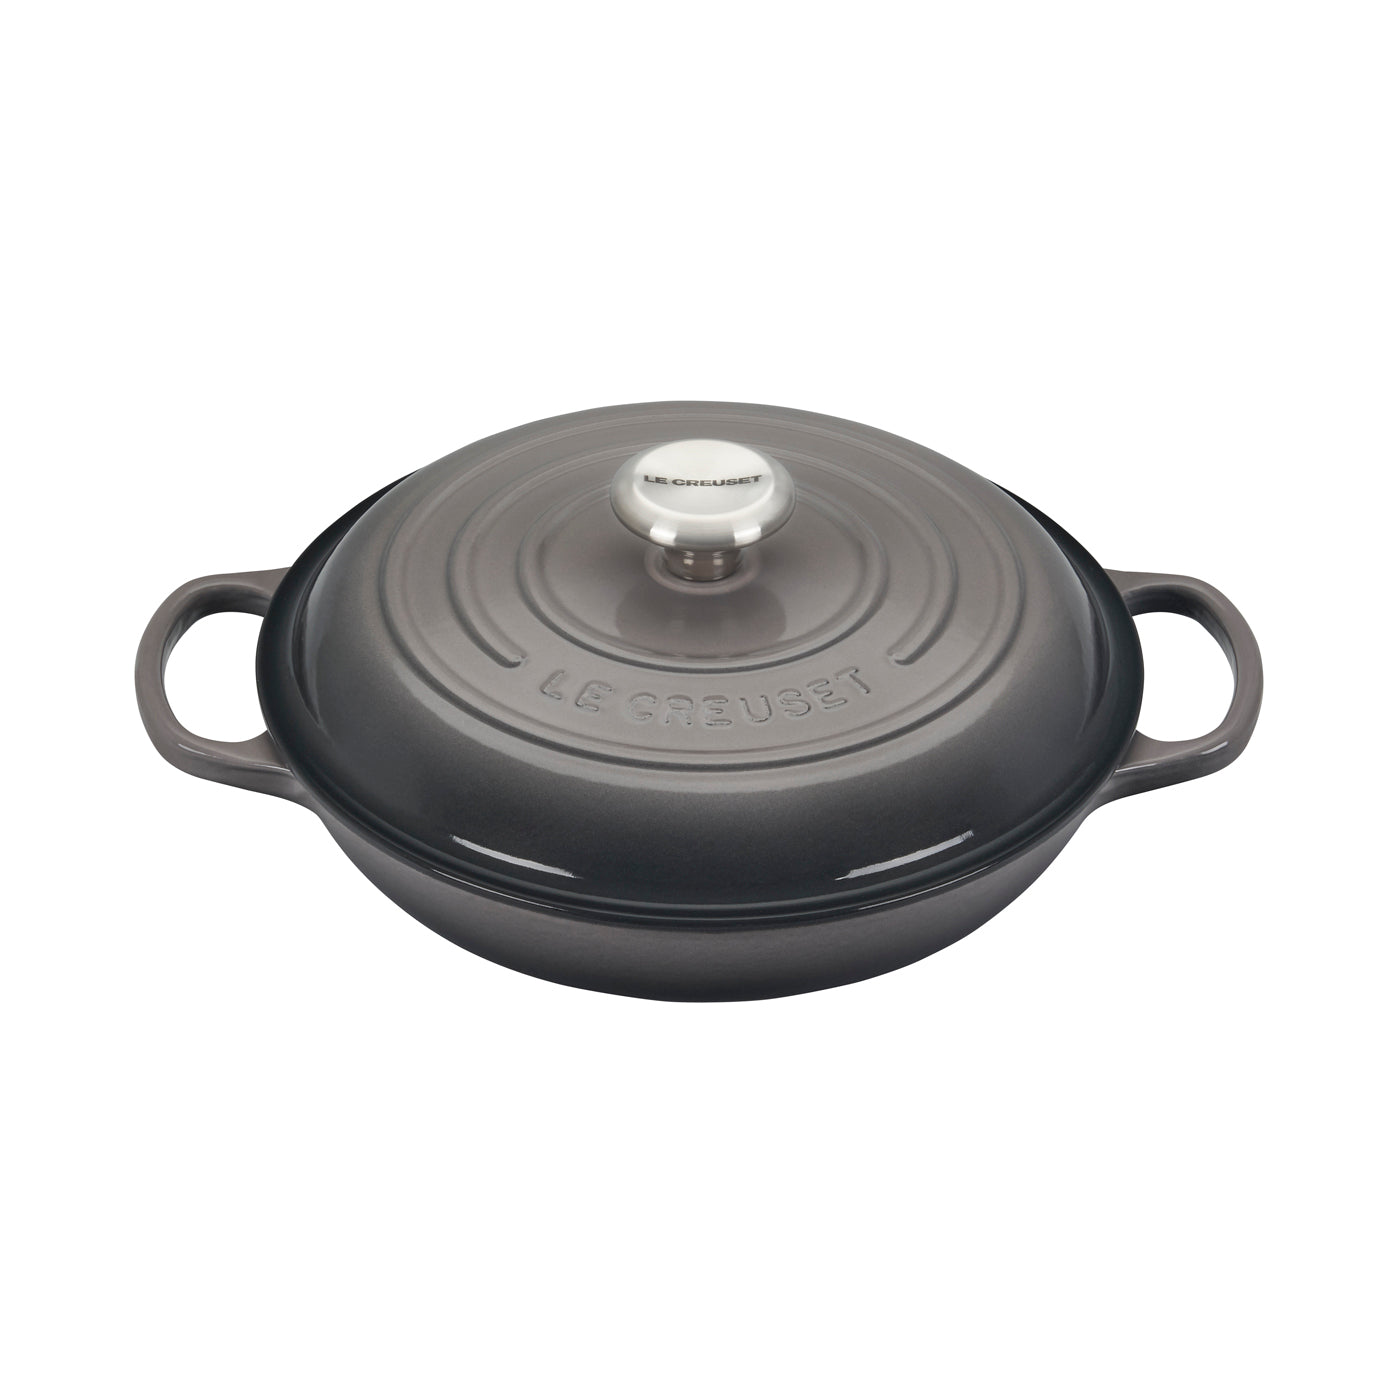 Le Creuset 2.25 Qt. Signature Braiser w/Stainless Steel Knob - Oyster